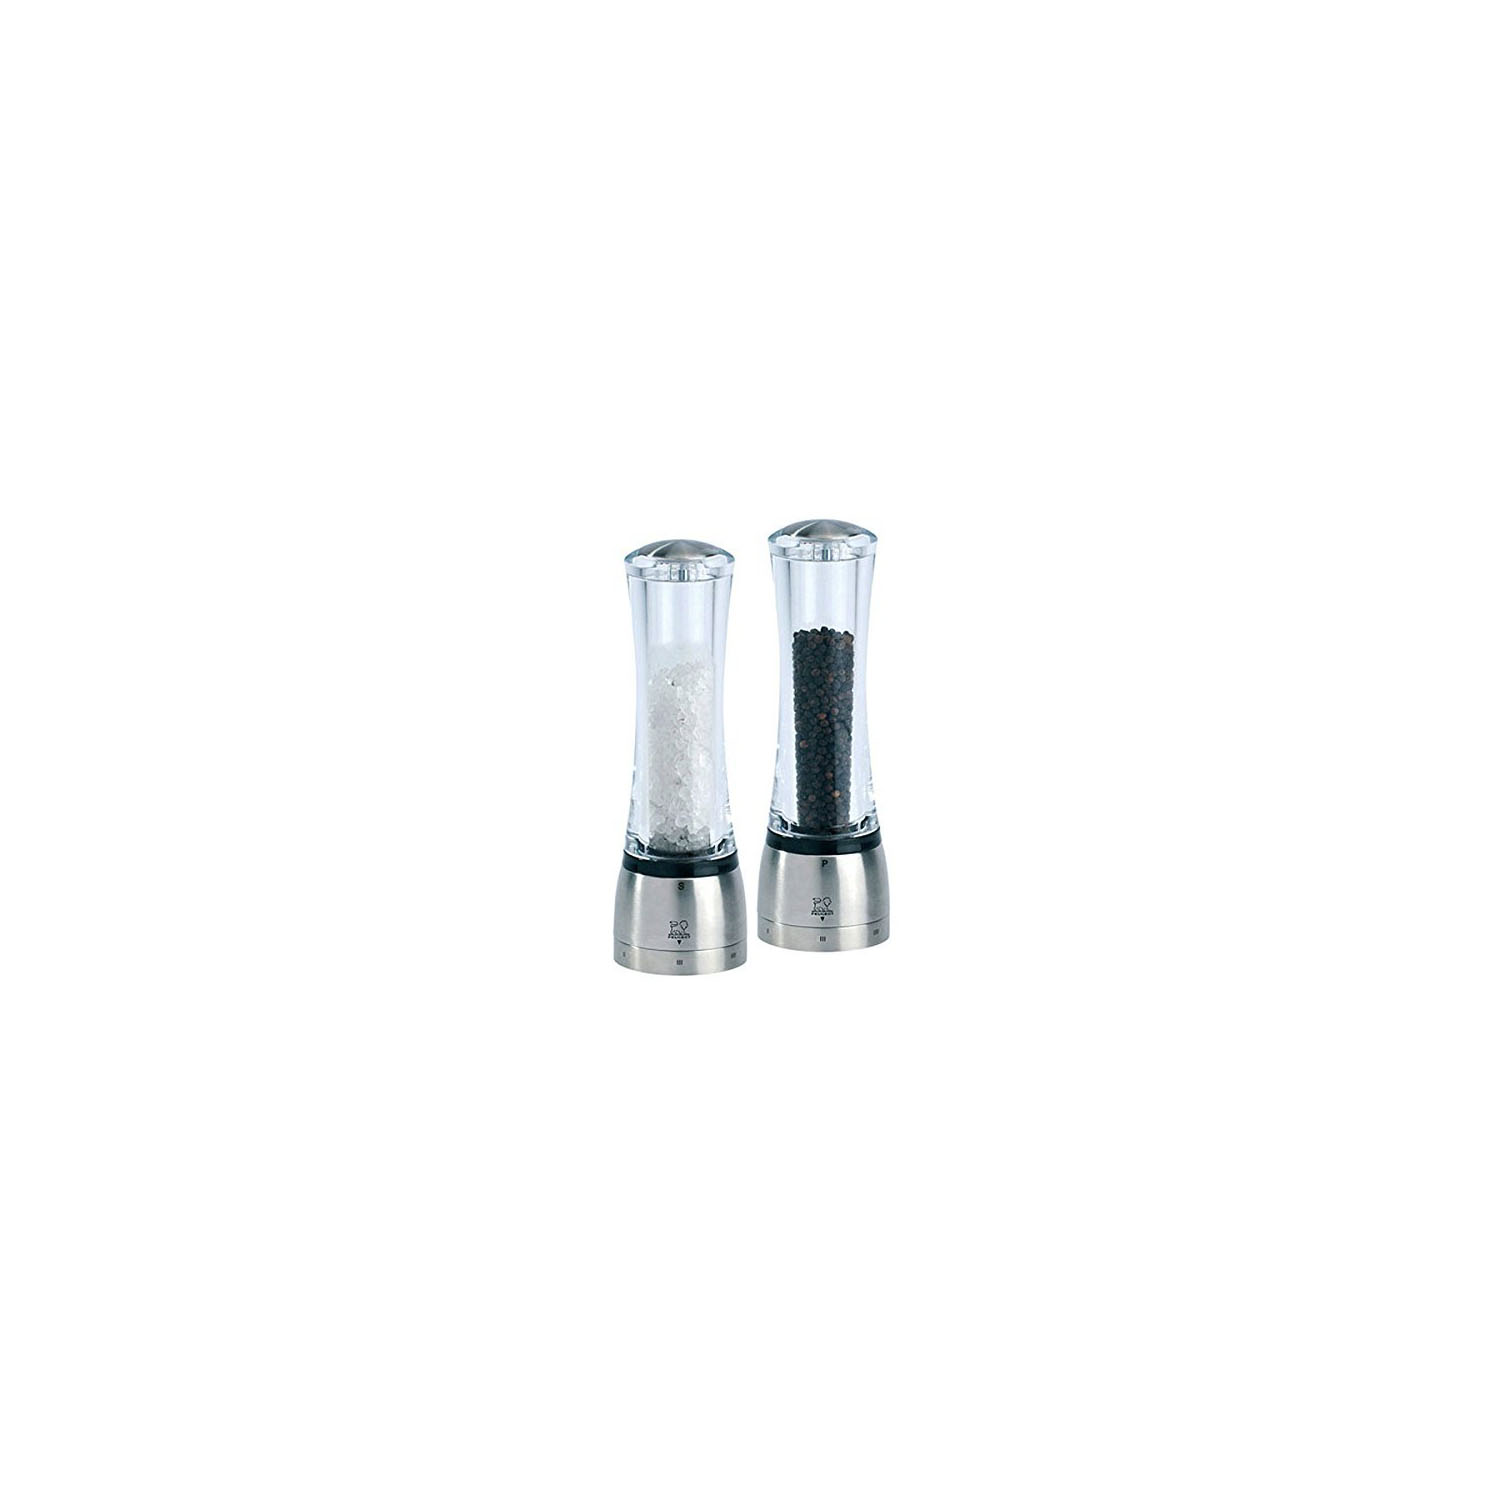 Peugeot Daman 8-inch Acrylic Salt and Pepper Mill